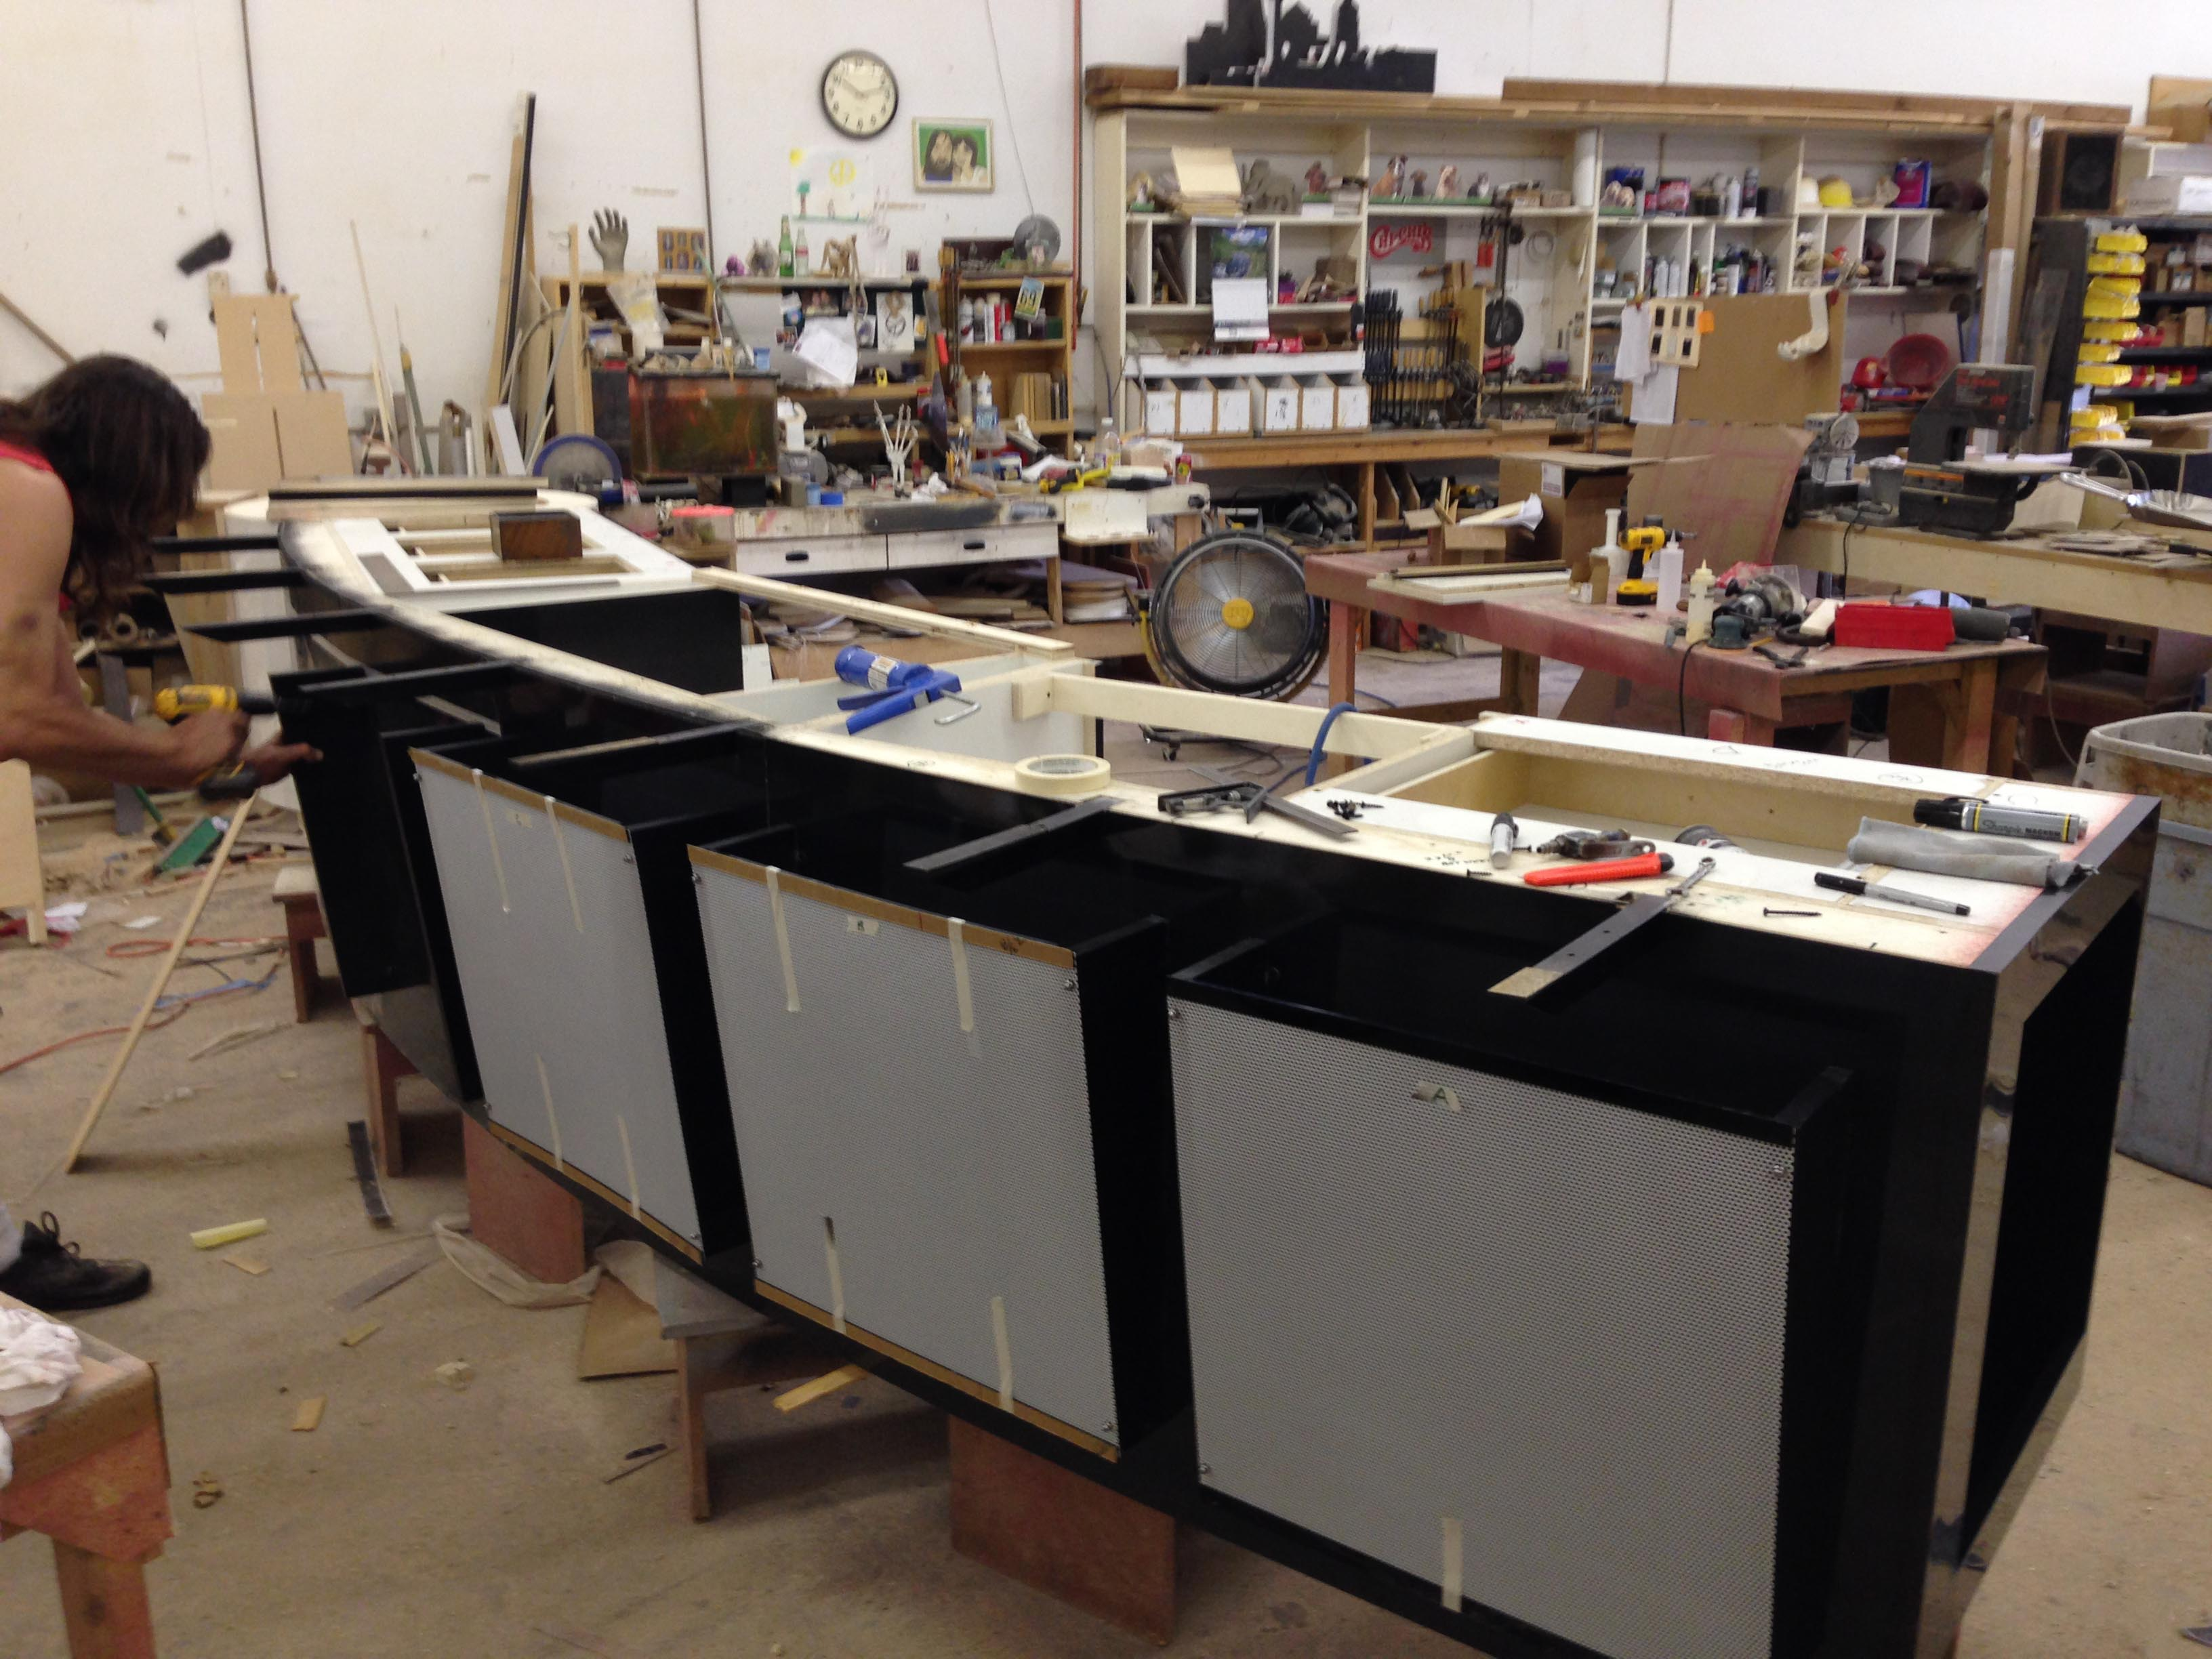 Kitchen Island in fabrication (1)